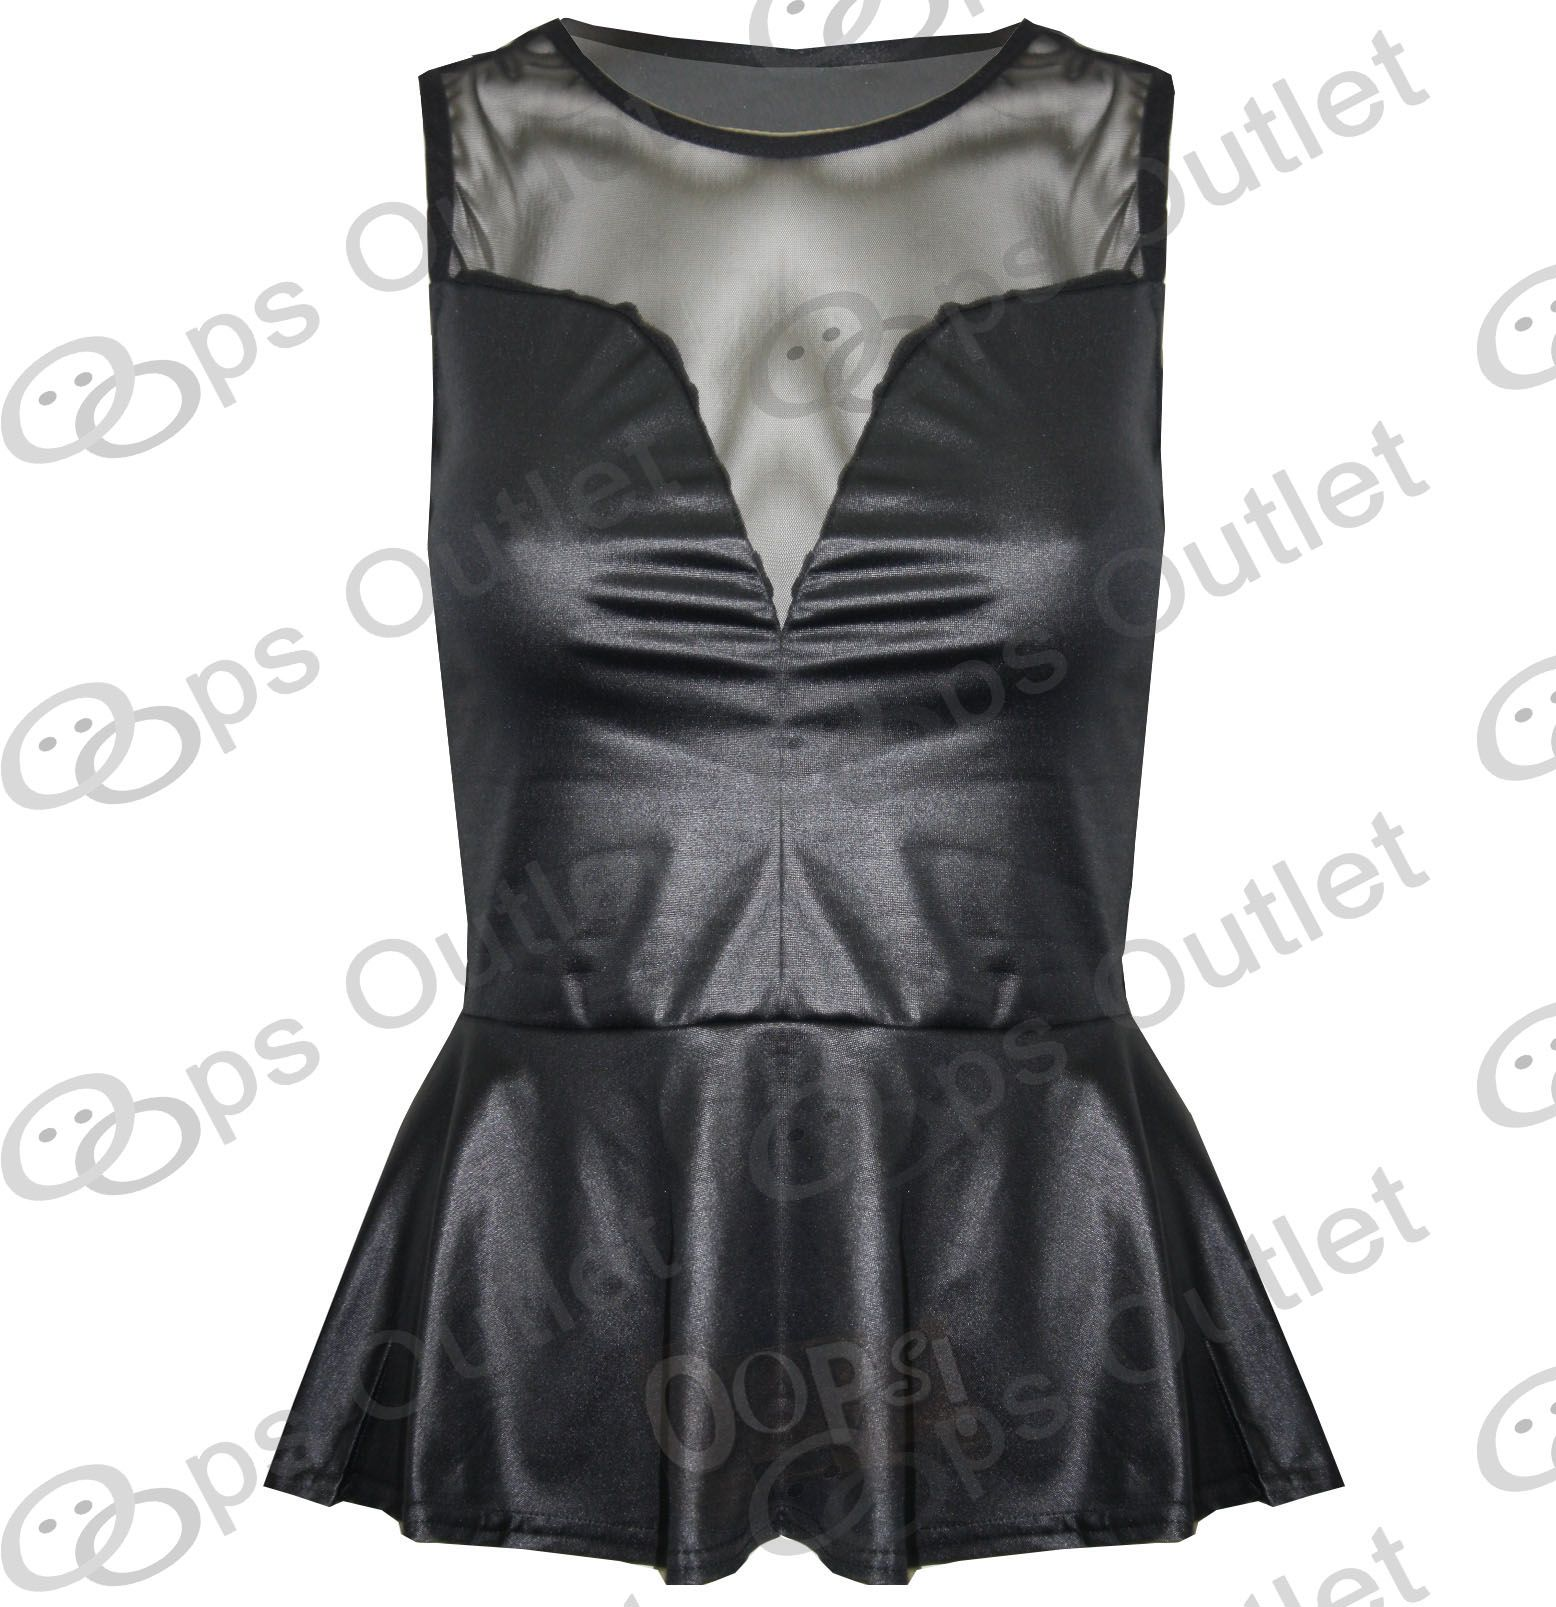 Womens-Wetlook-Long-Sleeve-PVC-Leather-Dress-Ladies-Bodycon-Tunic-Top-Size-8-14